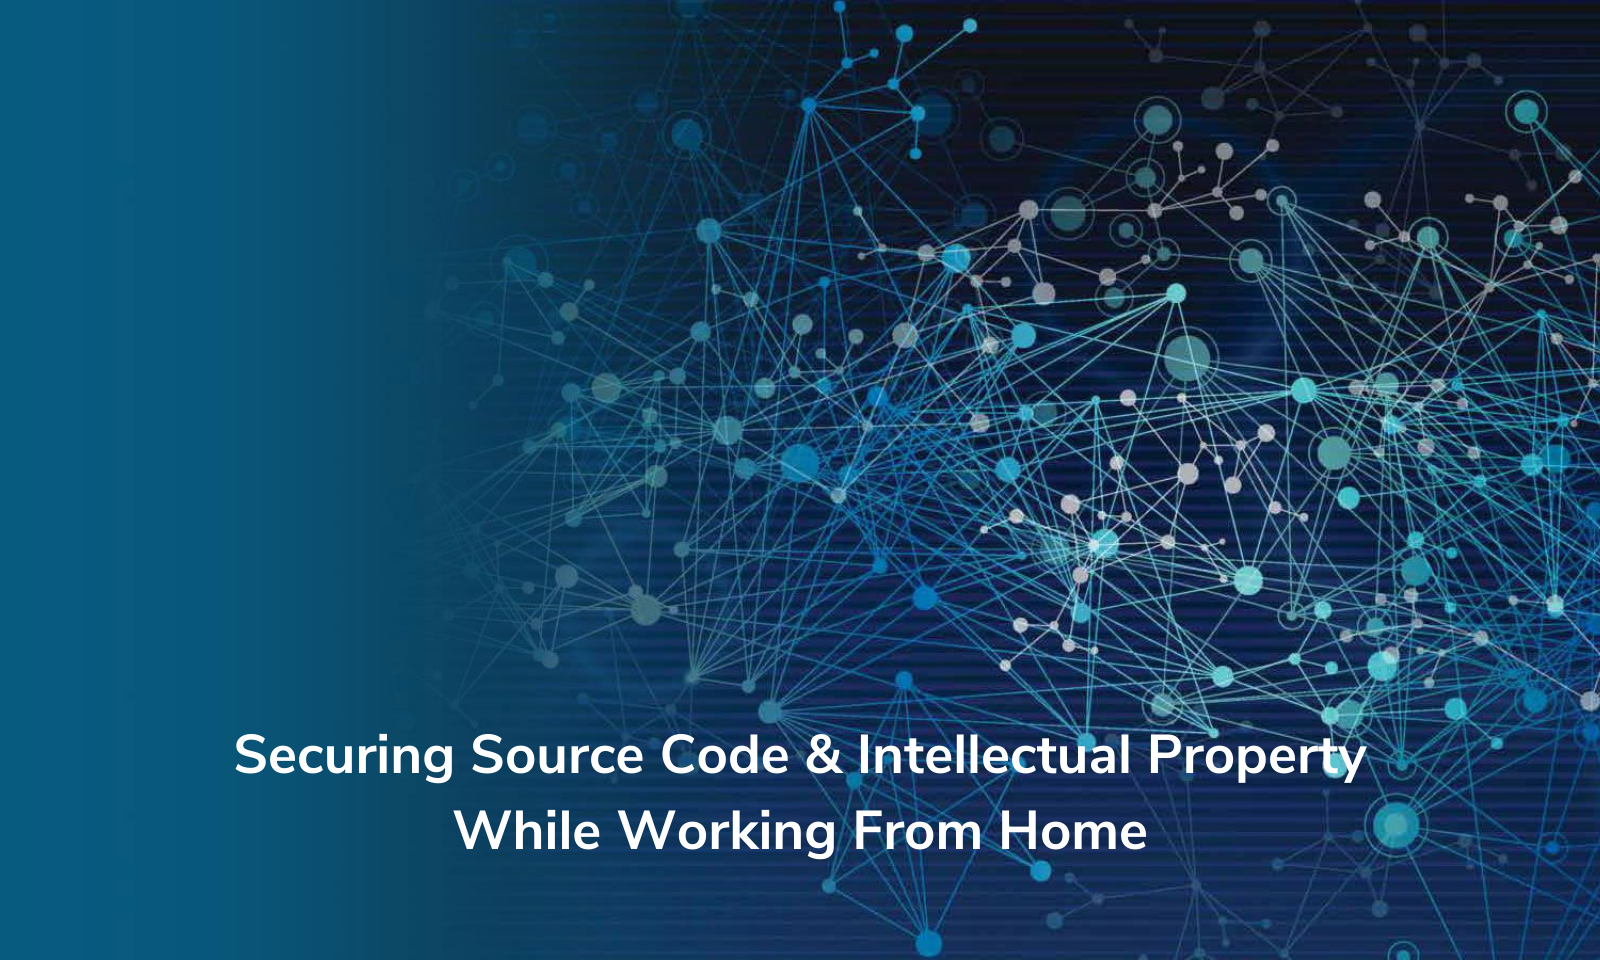 Securing Source Code & Intellectual Property While Working From Home